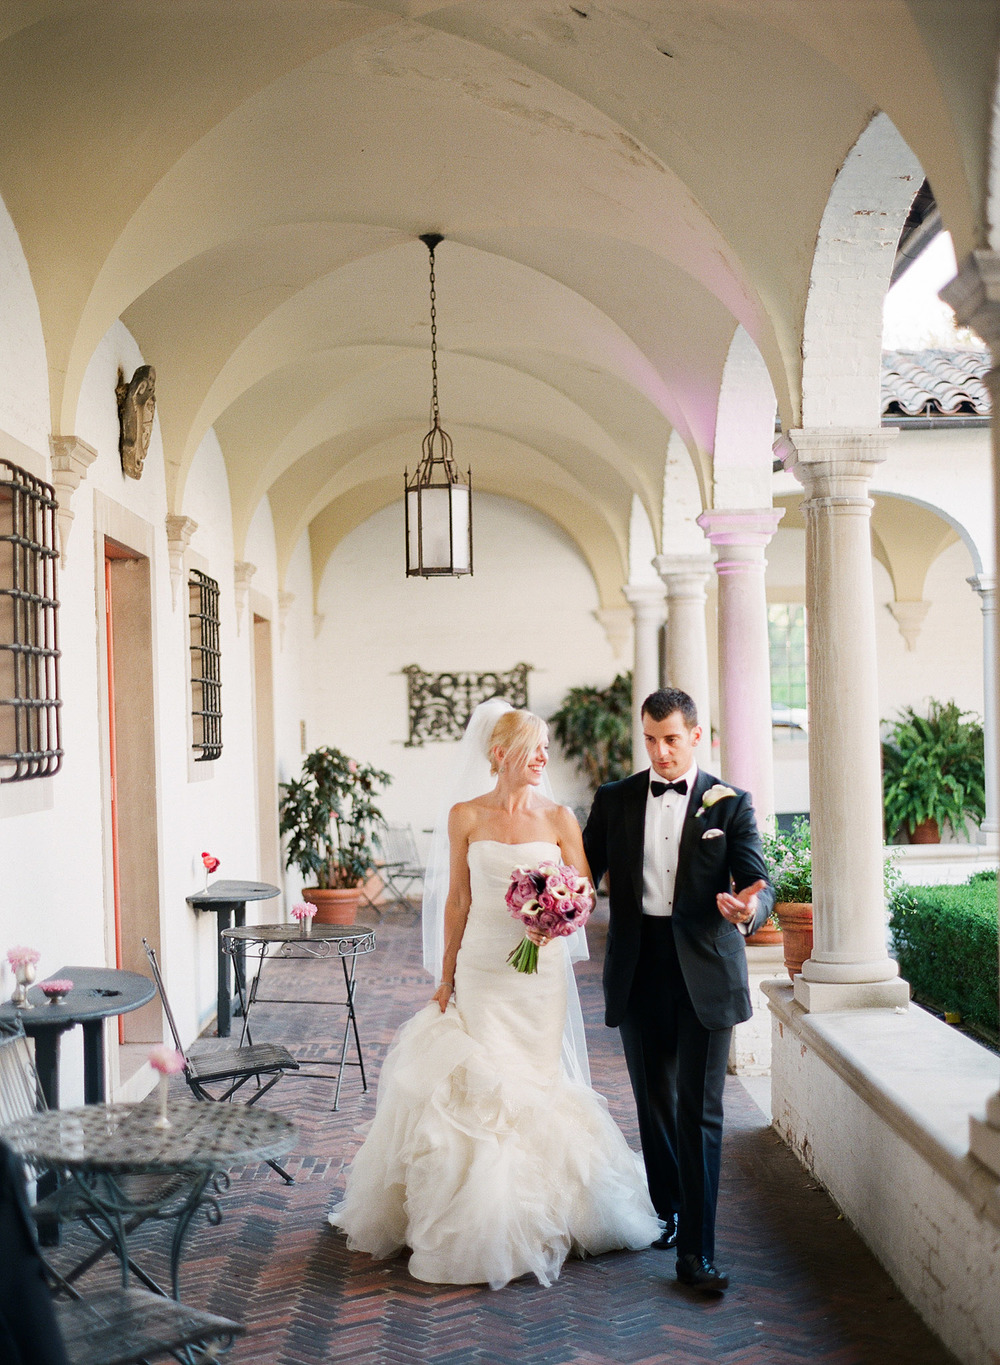 groom leads a bride through the columned corridors of the italian villa at their destination italian wedding while Destination wedding photographer lexia frank photographs their wedding on film at the Villa Terrace